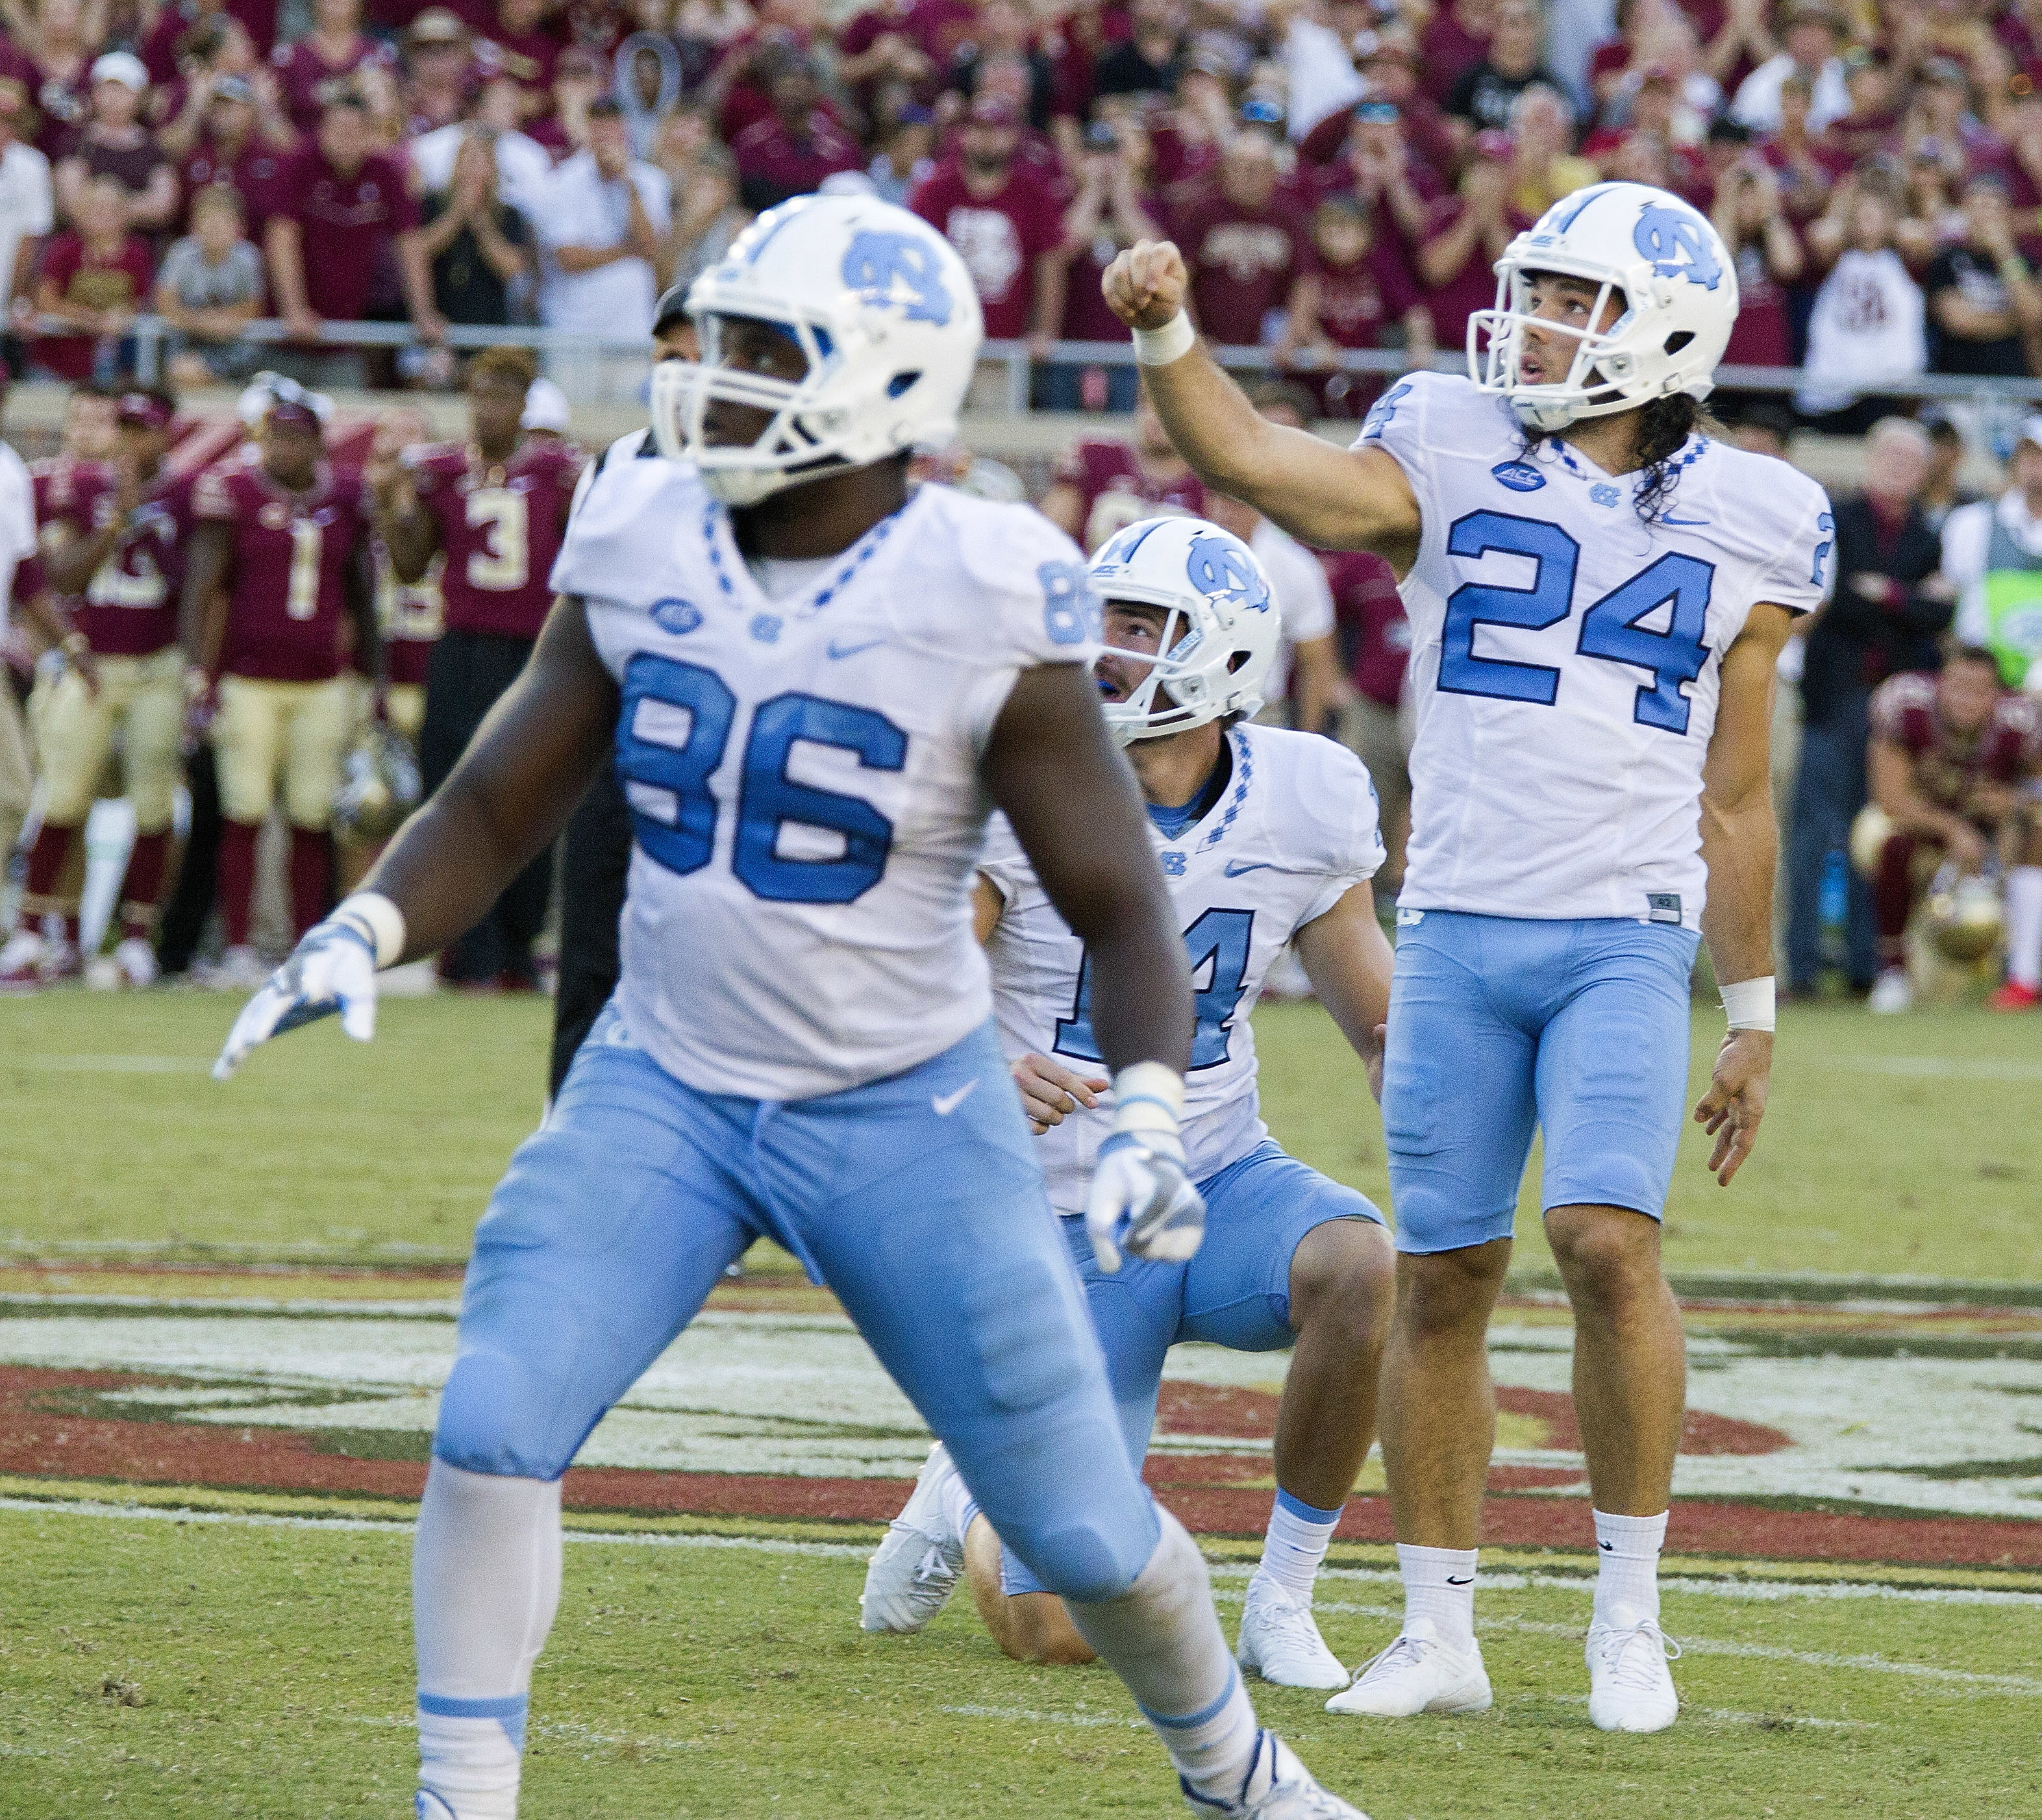 North Carolina kicker Nick Weiler (24) and teammates Carl Tucker (86) and holder Logan Byrd (14) watch Weiler's 54-yard game winning field goal as time expired against Florida State in an NCAA college football game in Tallahassee, Fla., Saturday, Oct. 1,